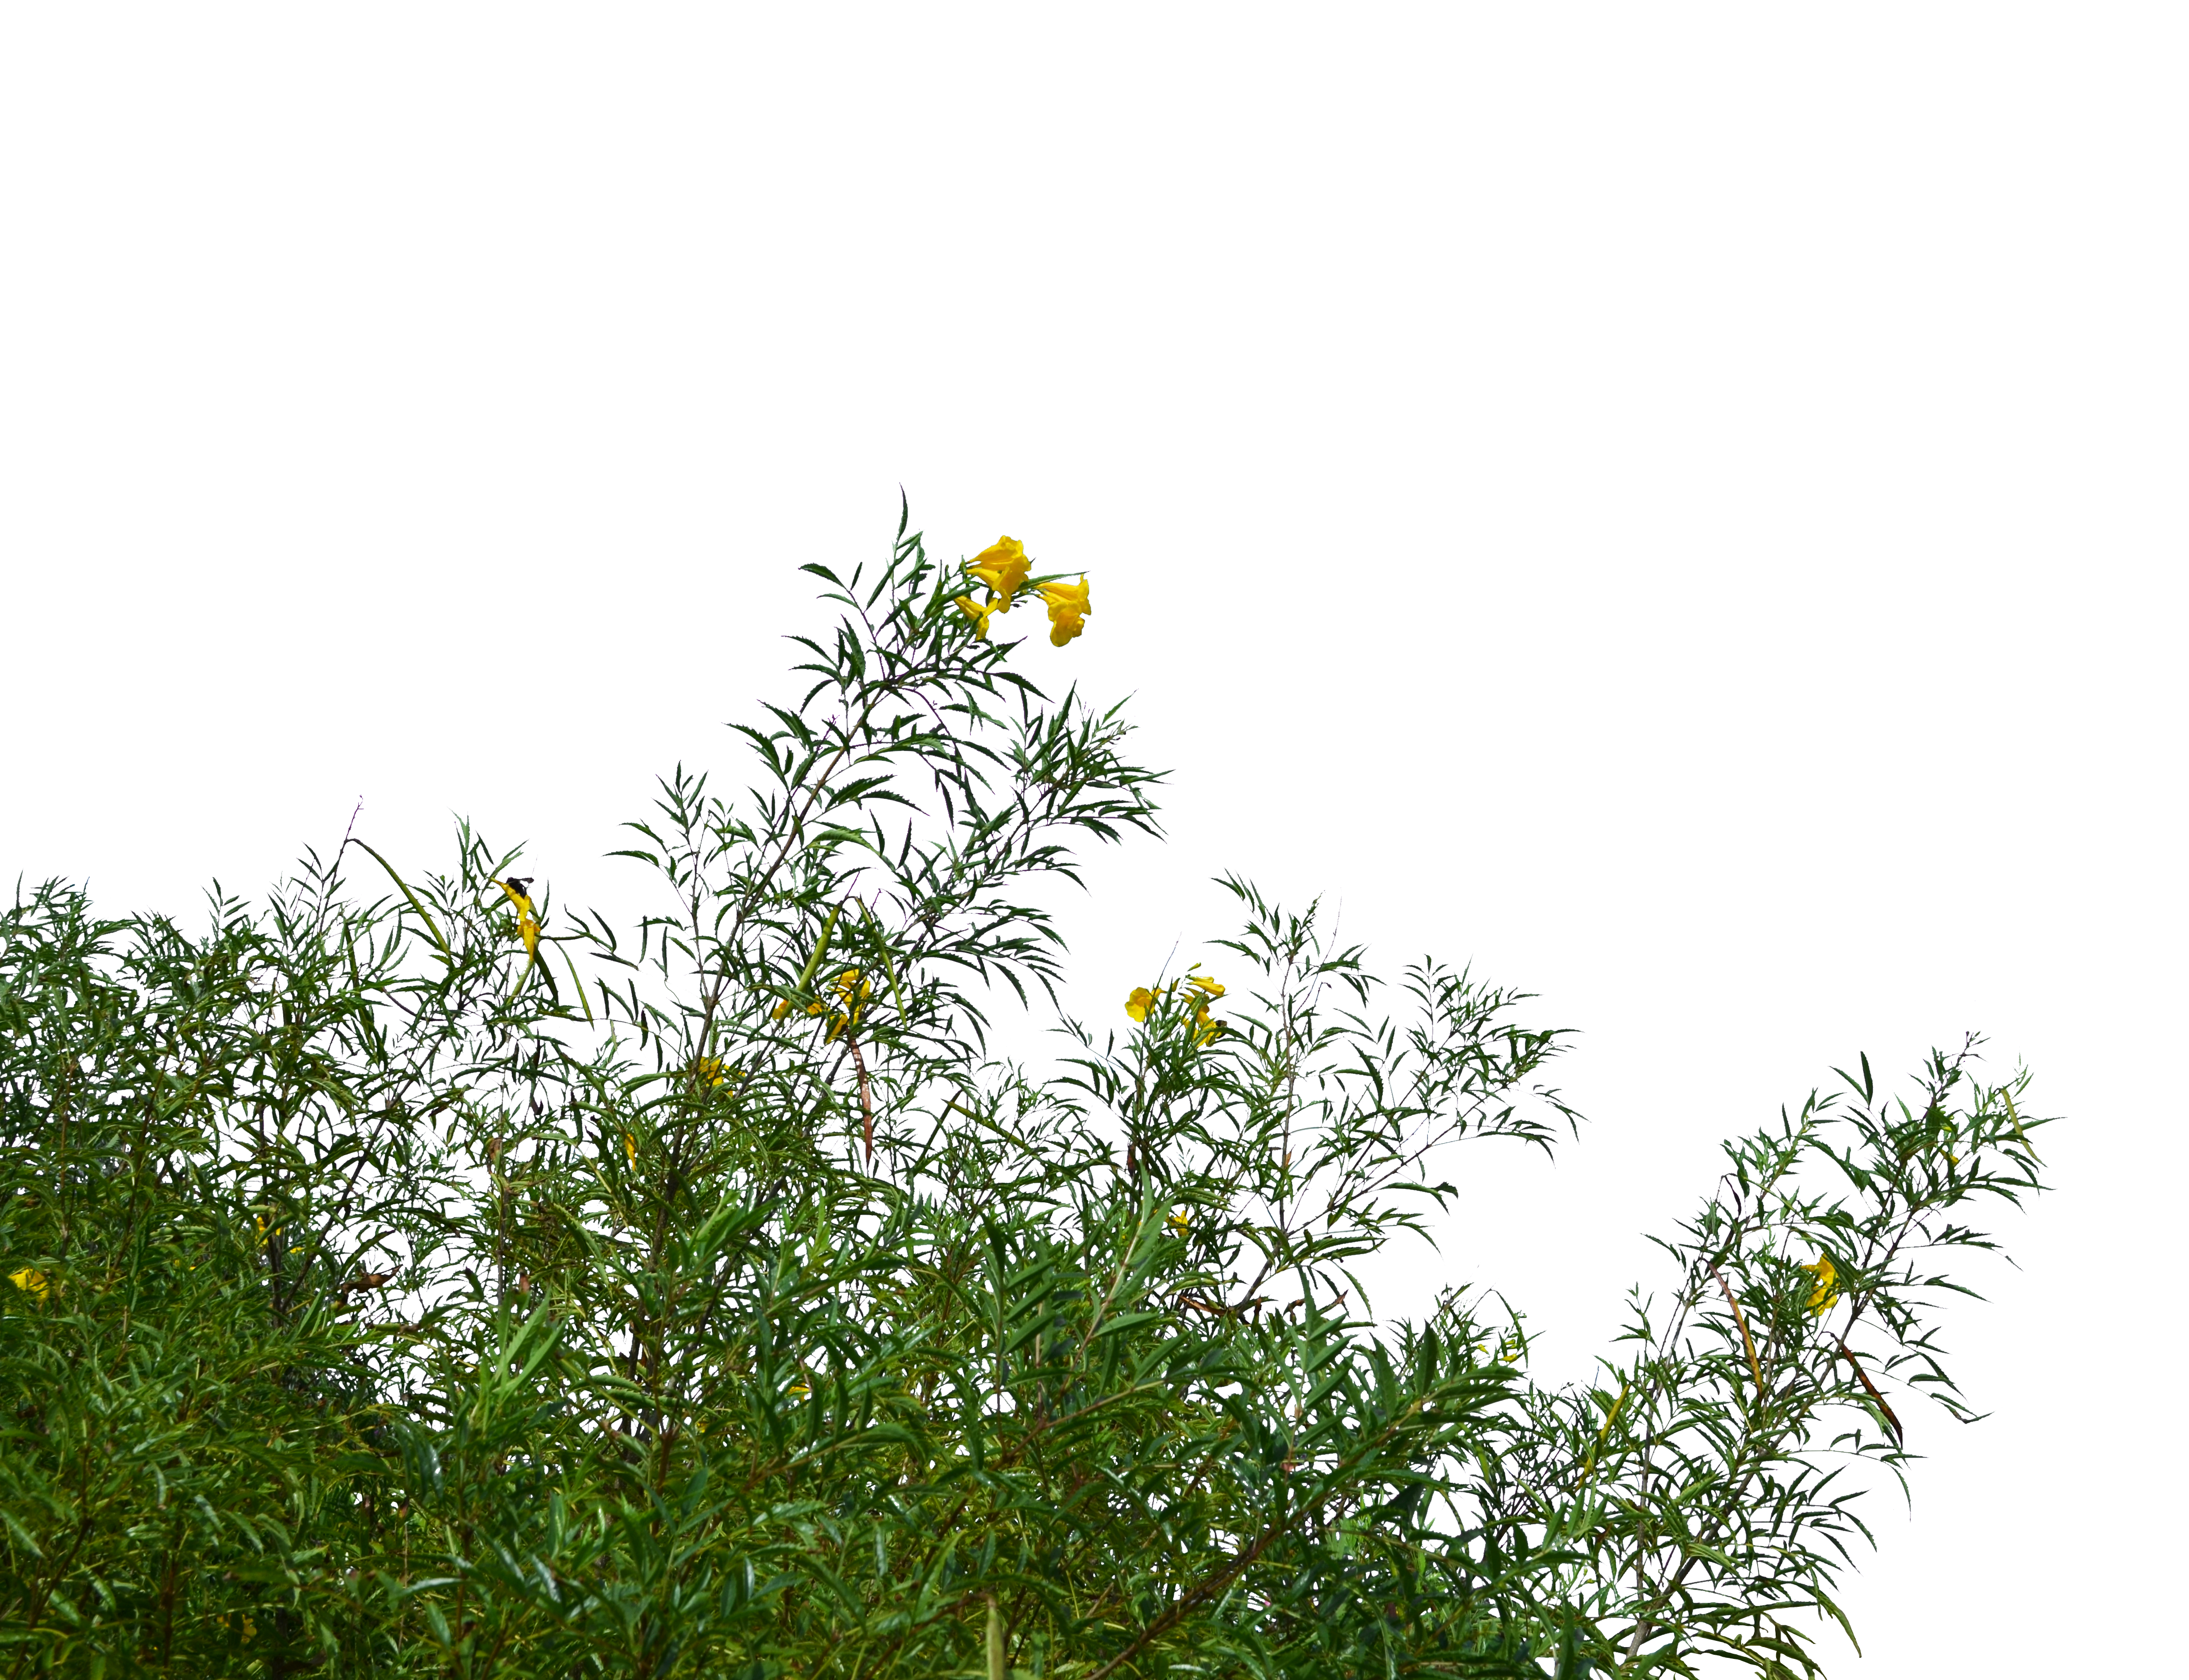 Wild Flowers and Grass PNG Stock Photo 0183 cc2 by